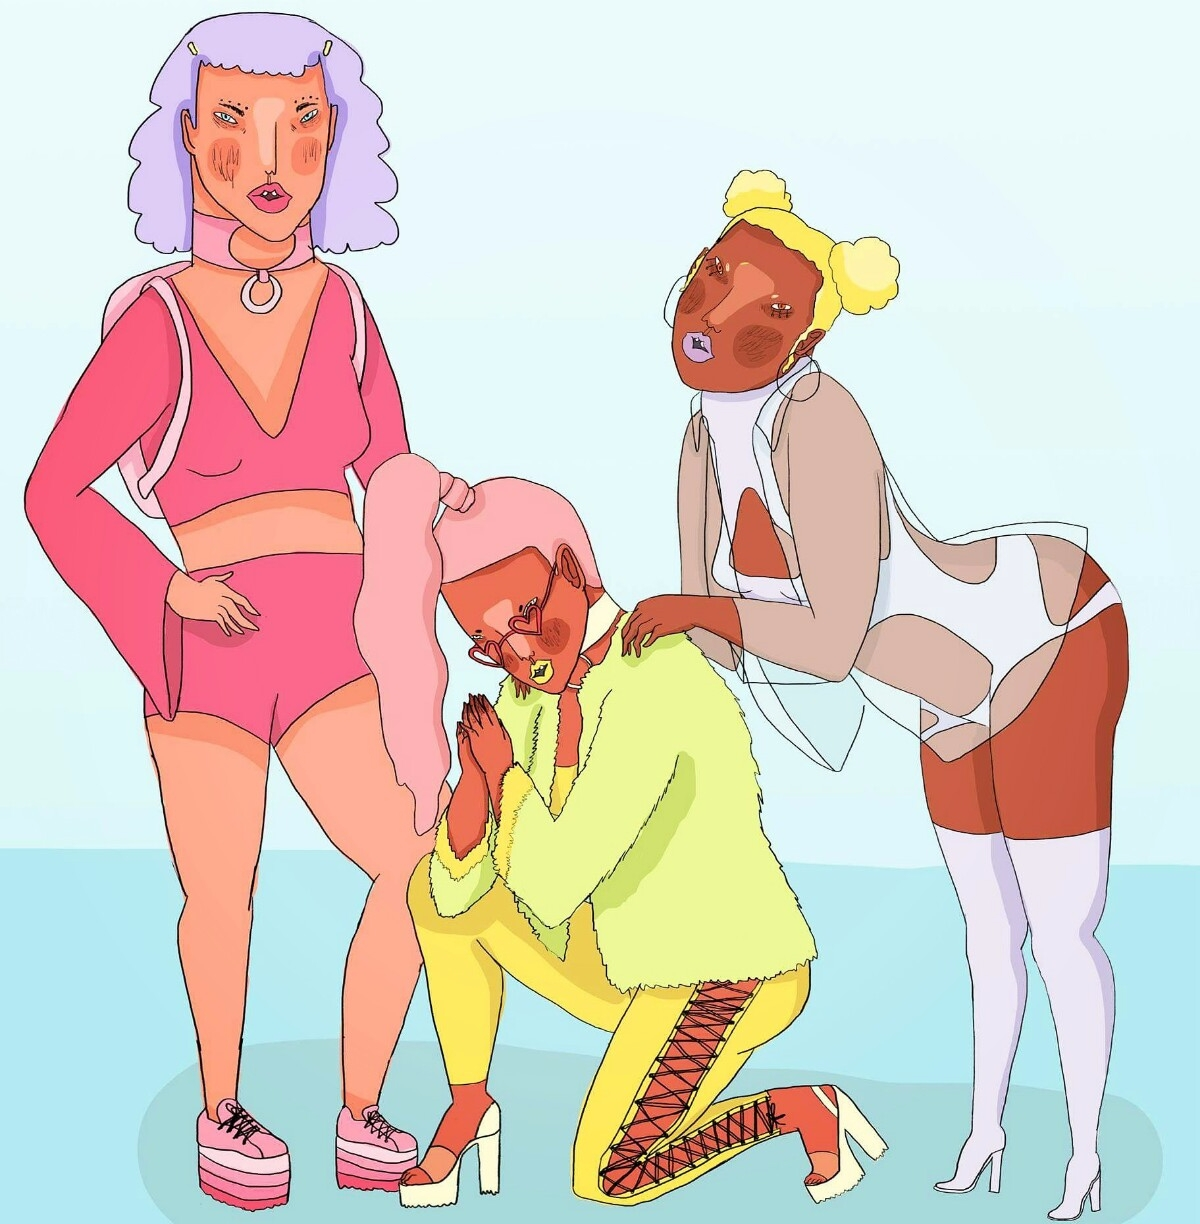 Gurl gang - art, illustration, feminist - missjaws | ello